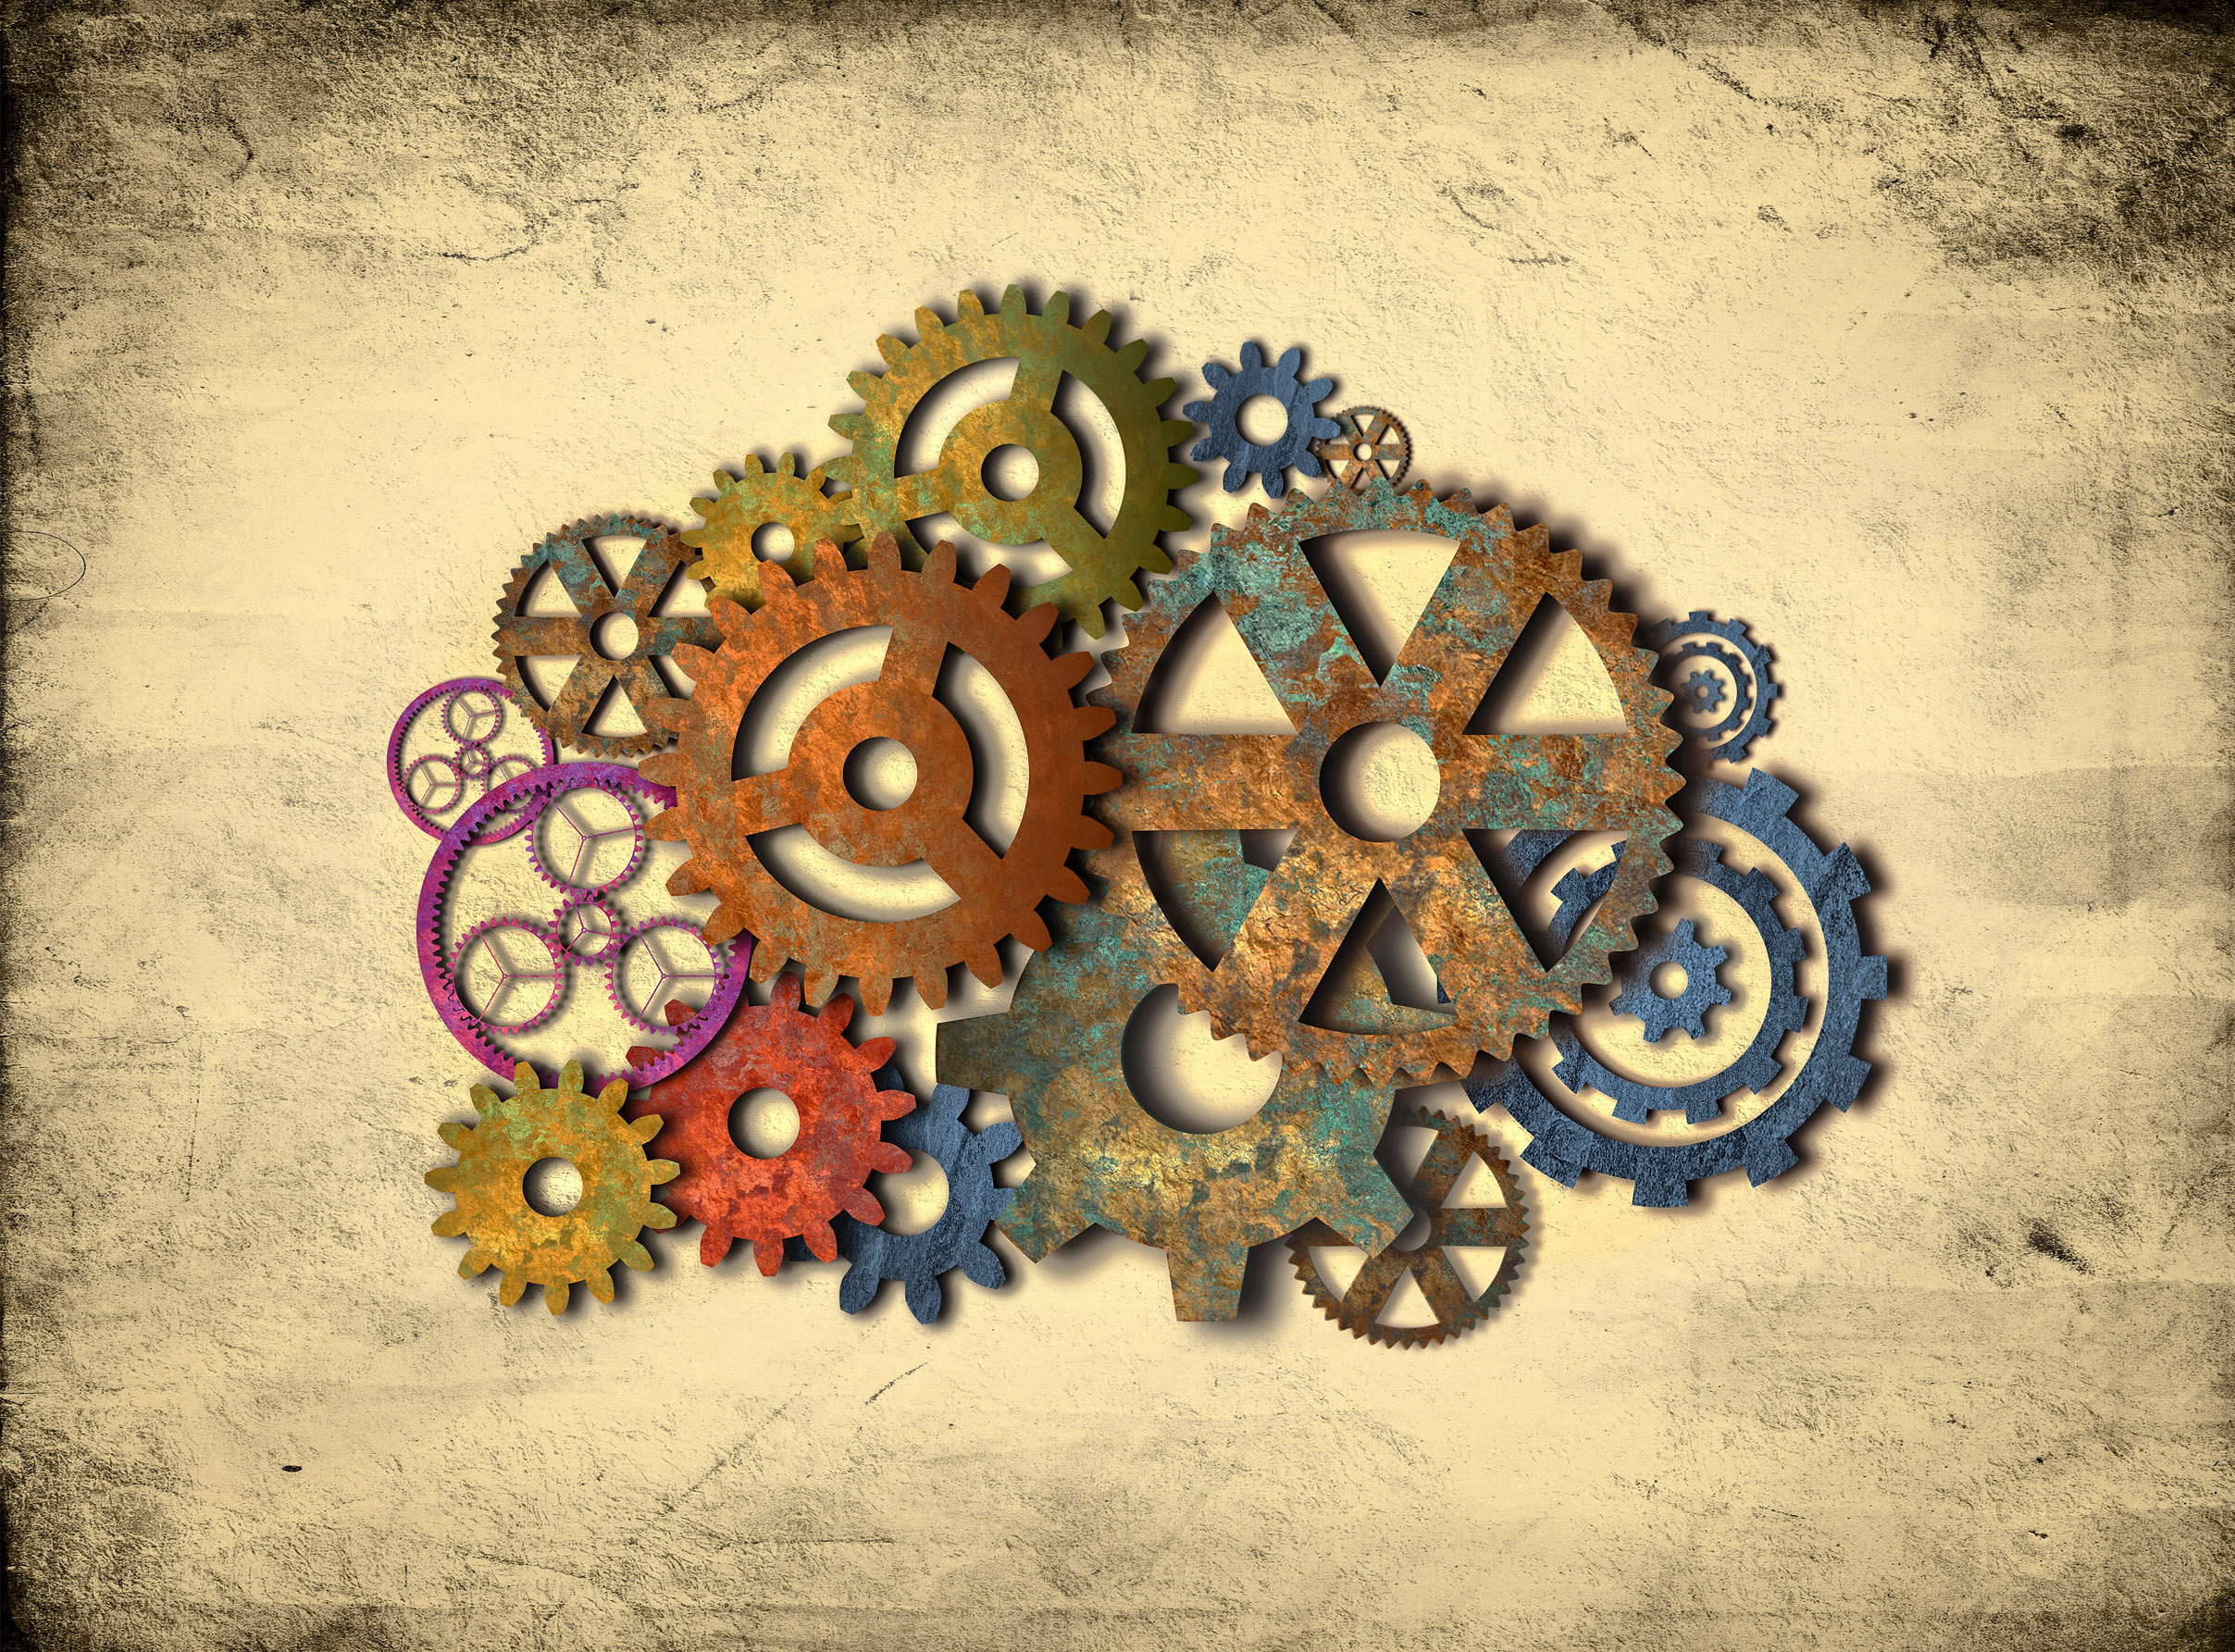 Retro rusty colorful cogwheels photo